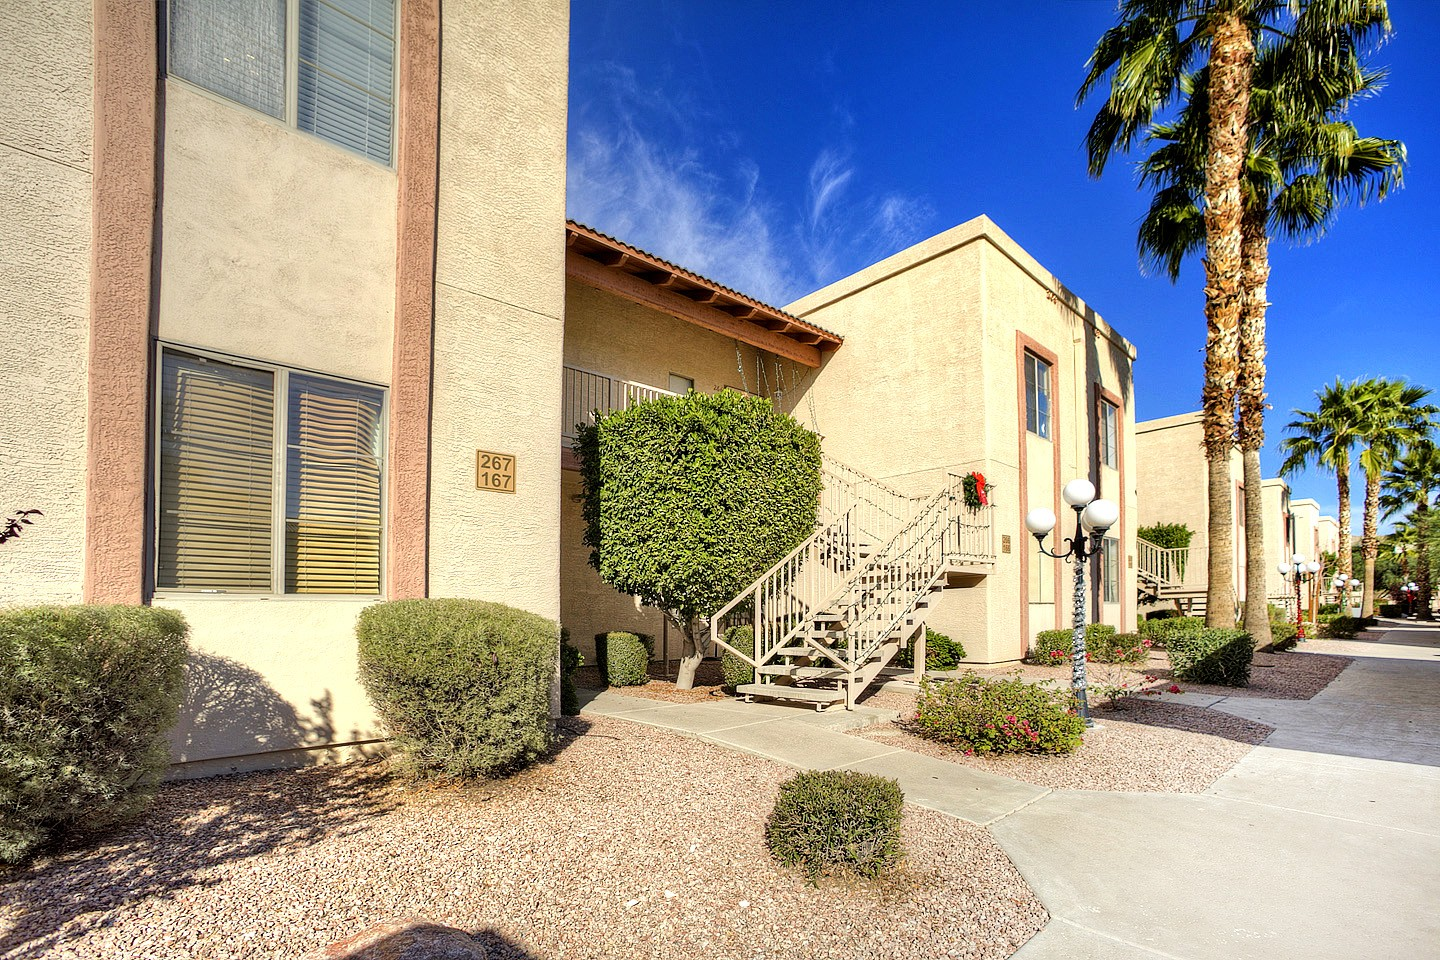 205 n 74th st 267 mesa az 85207 2 bedroom apartment for rent for 895 month zumper